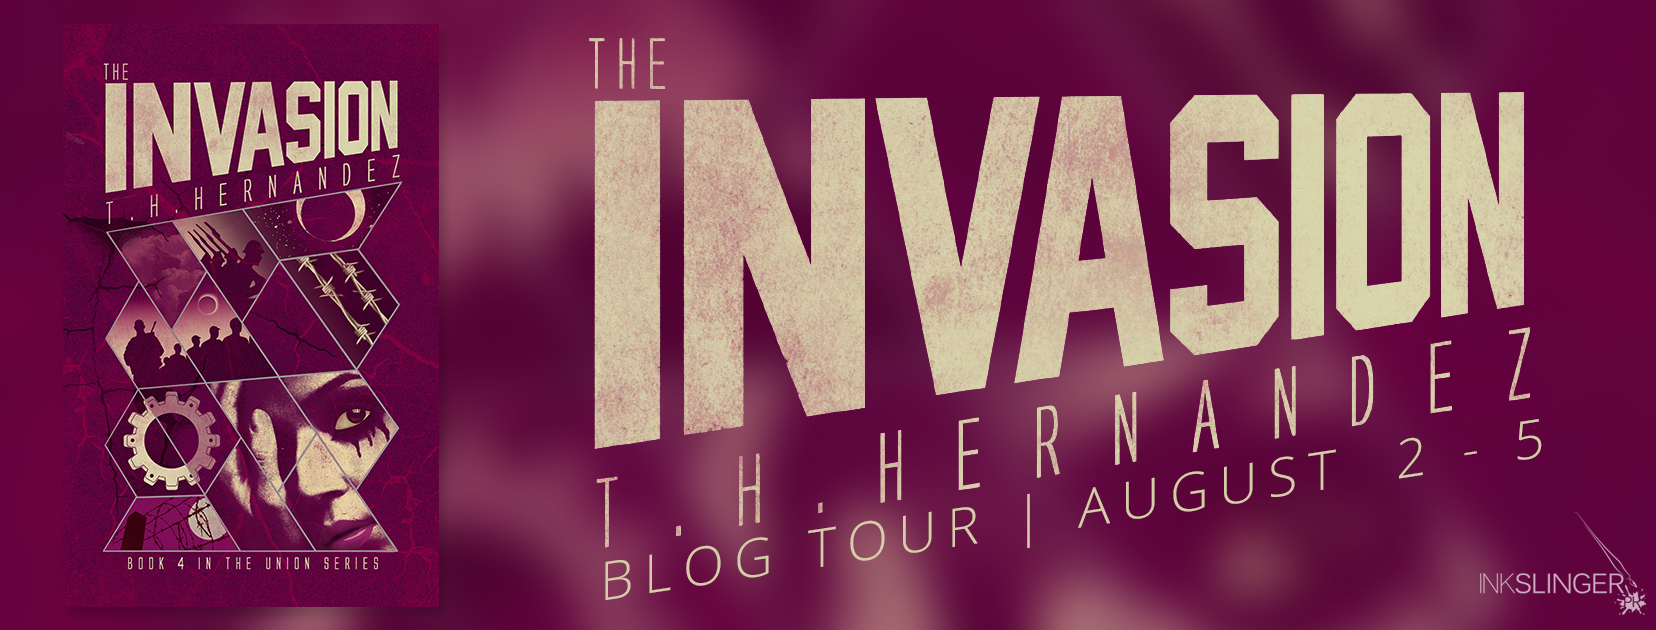 BOOK REVIEW + GIVEAWAY - The Invasion (The Union #4) by T.H. Hernandez